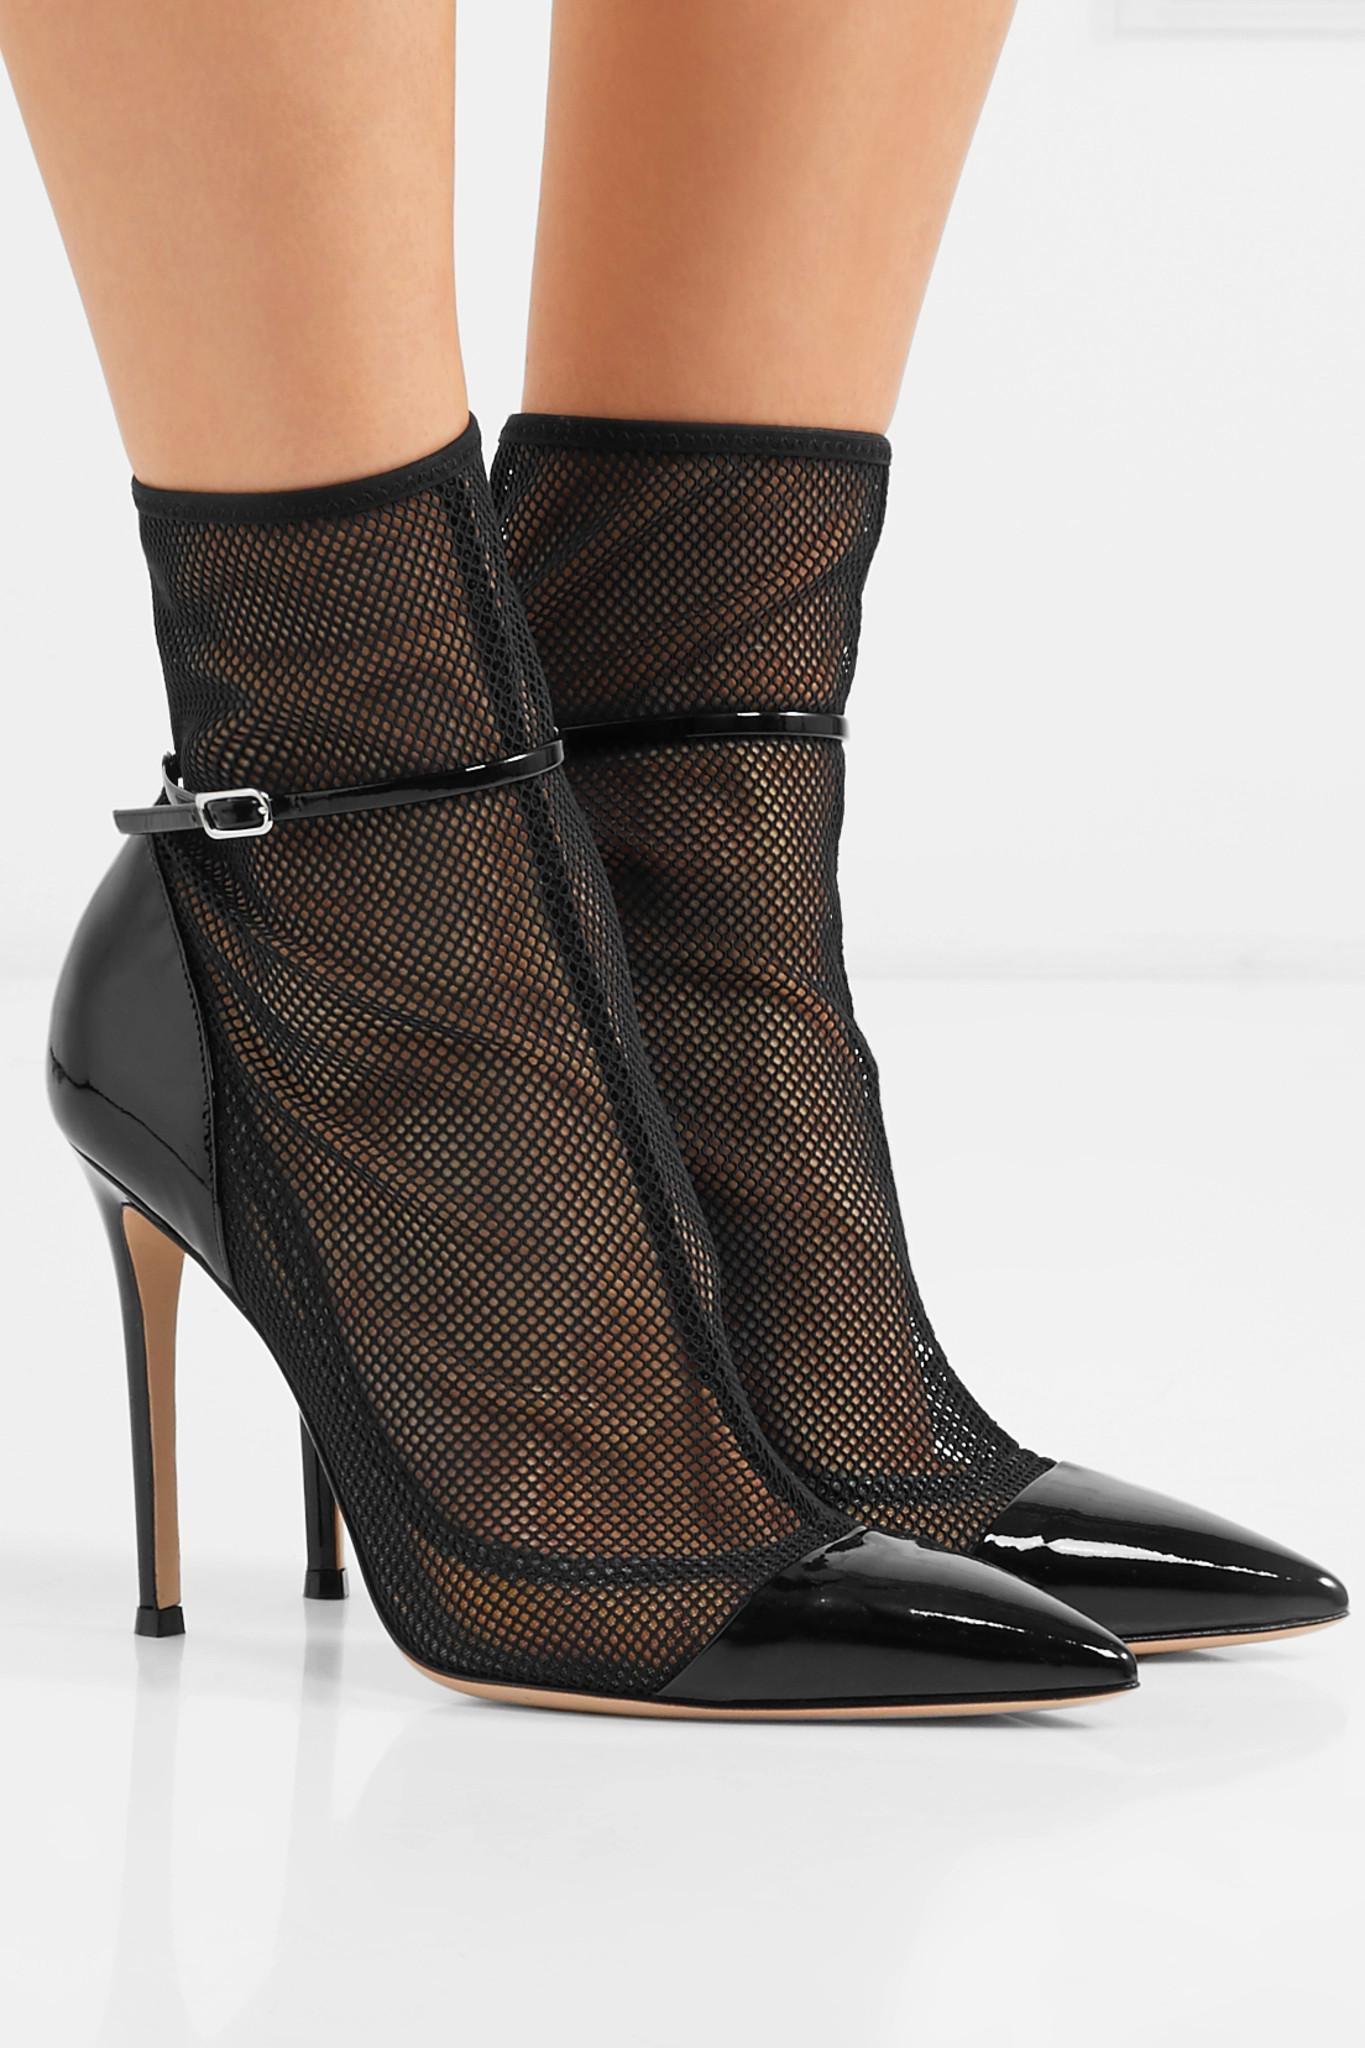 8bcd2587c50e Gianvito Rossi - Black Mesh And Patent-leather Ankle Boots - Lyst. View  fullscreen